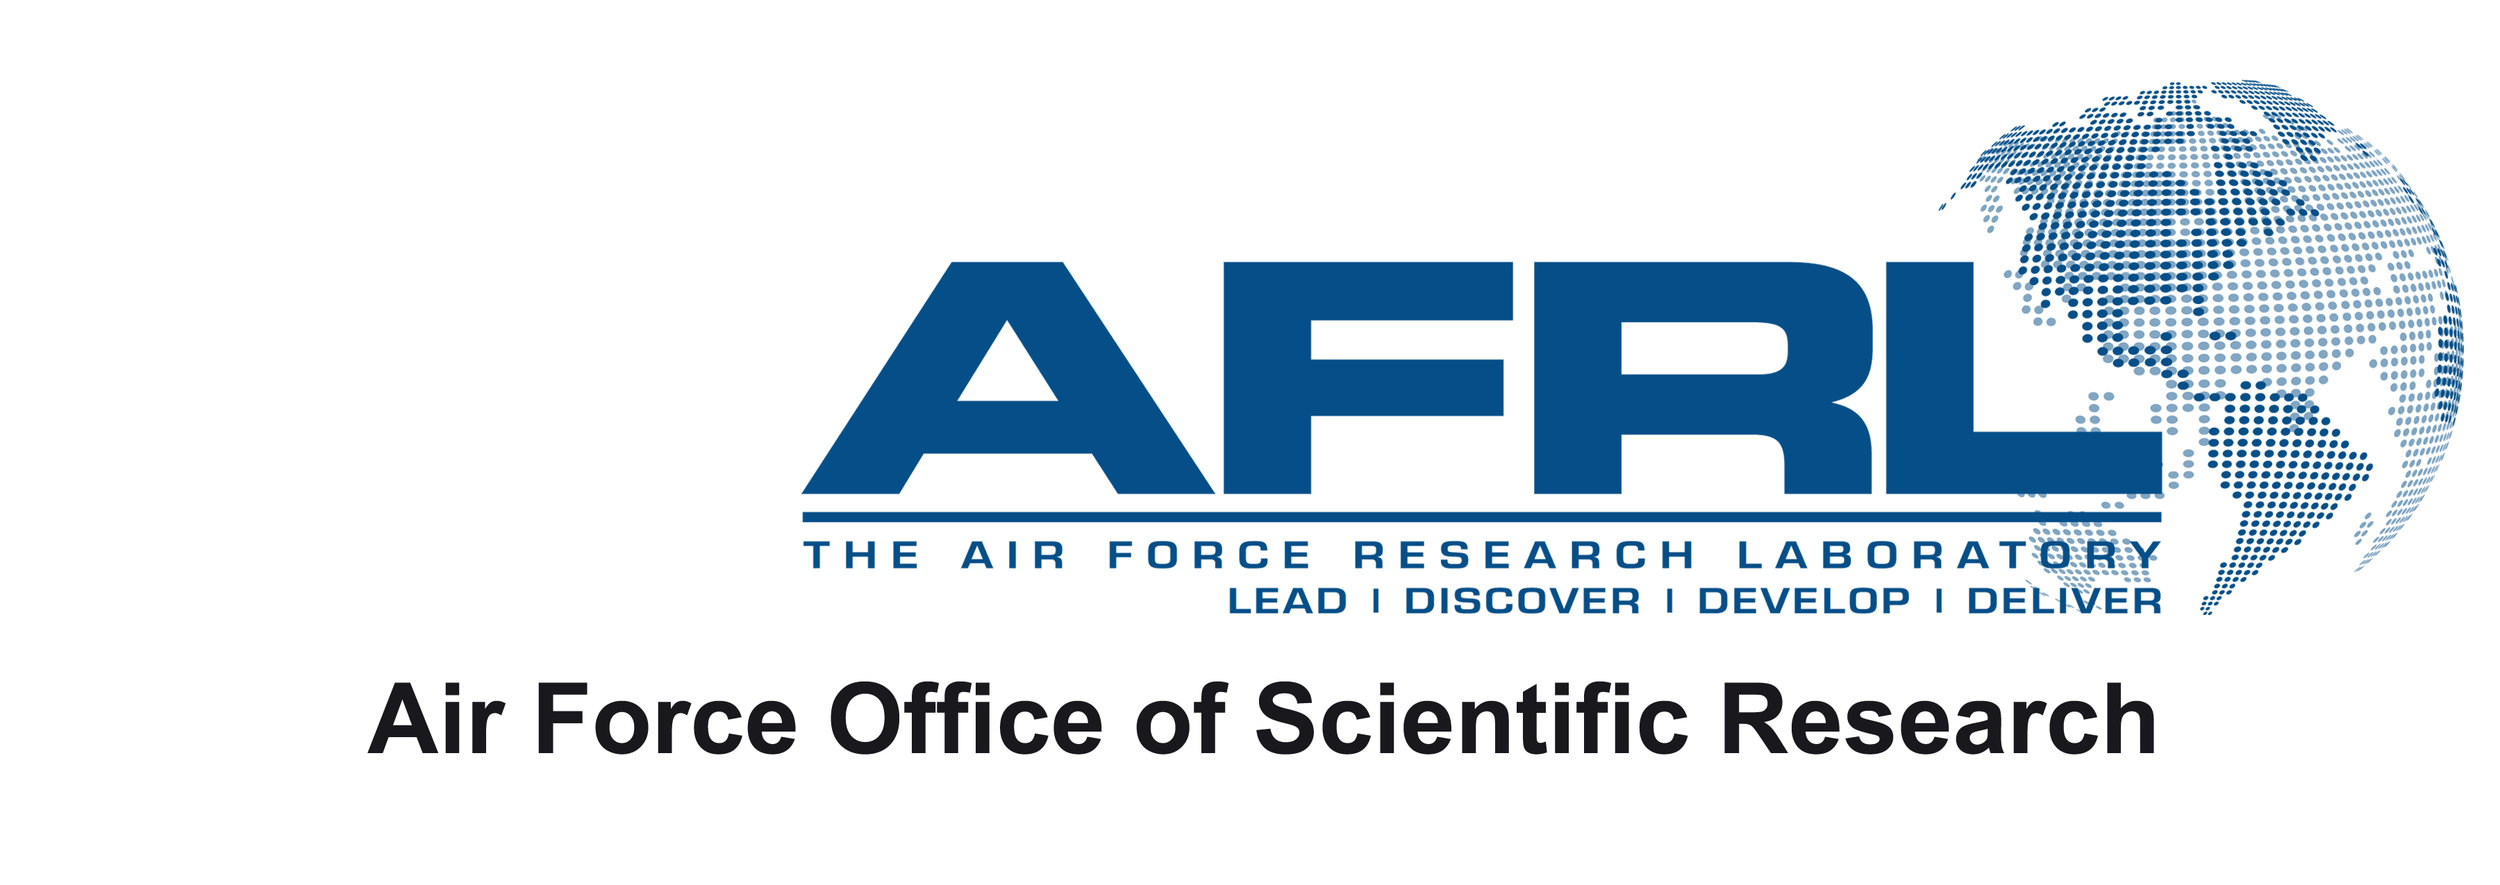 AFRL_onecolorblue_Basic Research logo.jpg